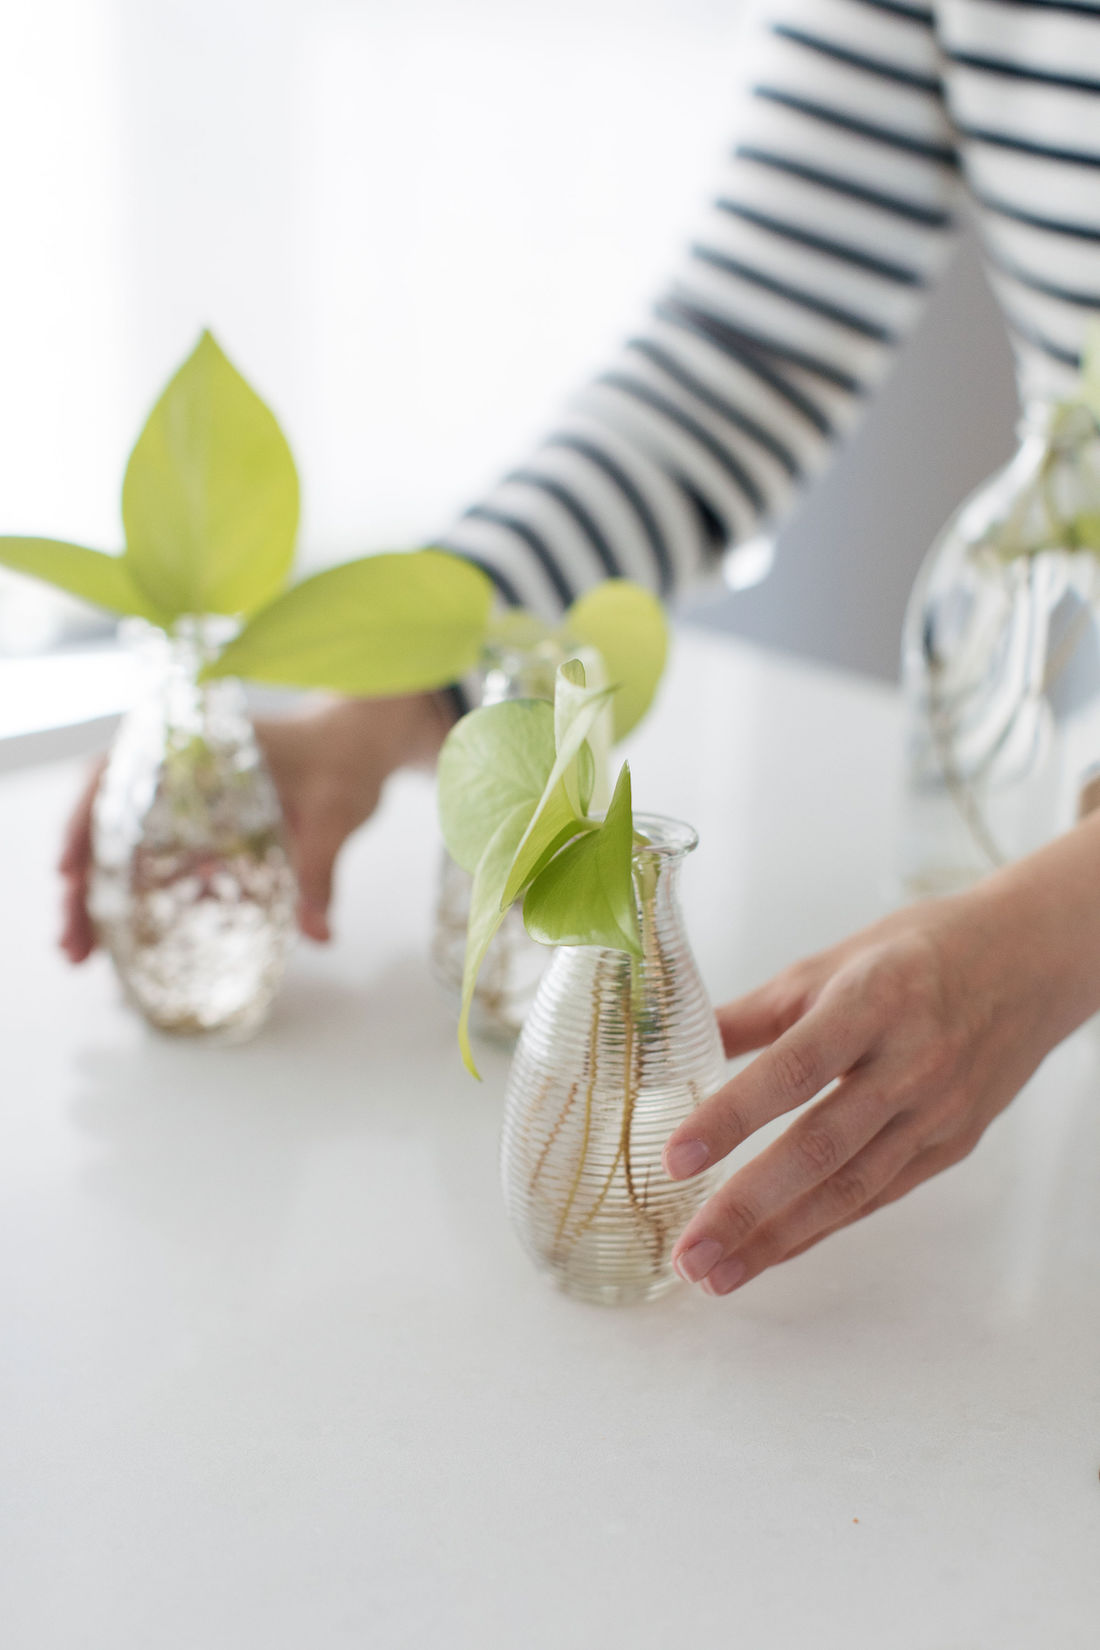 Jars to propagate plants